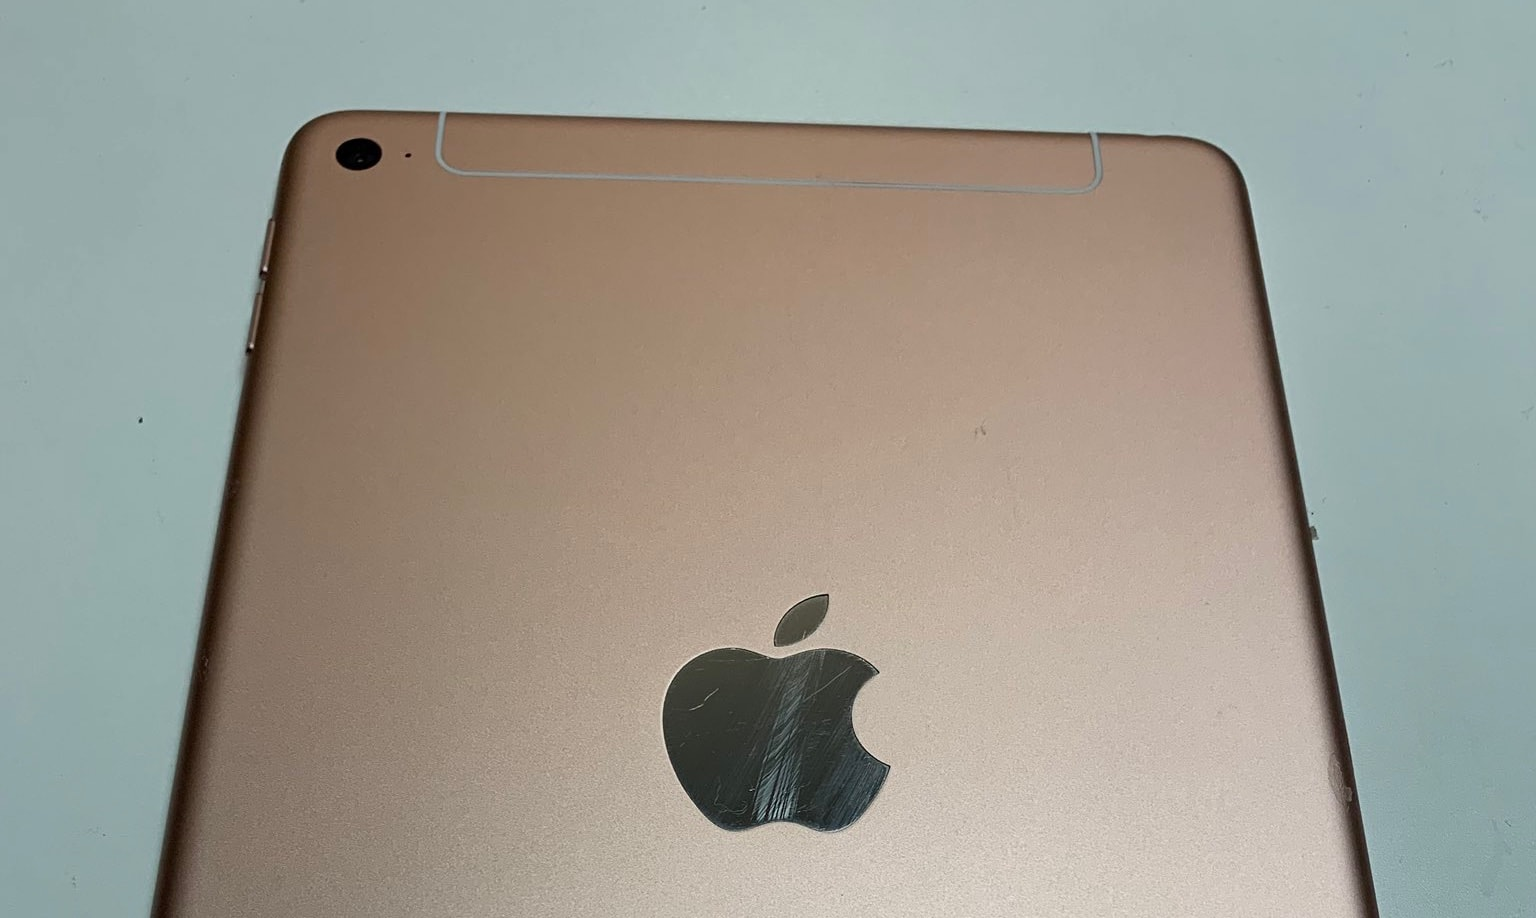 New mages could be of the rumored iPad mini 5.